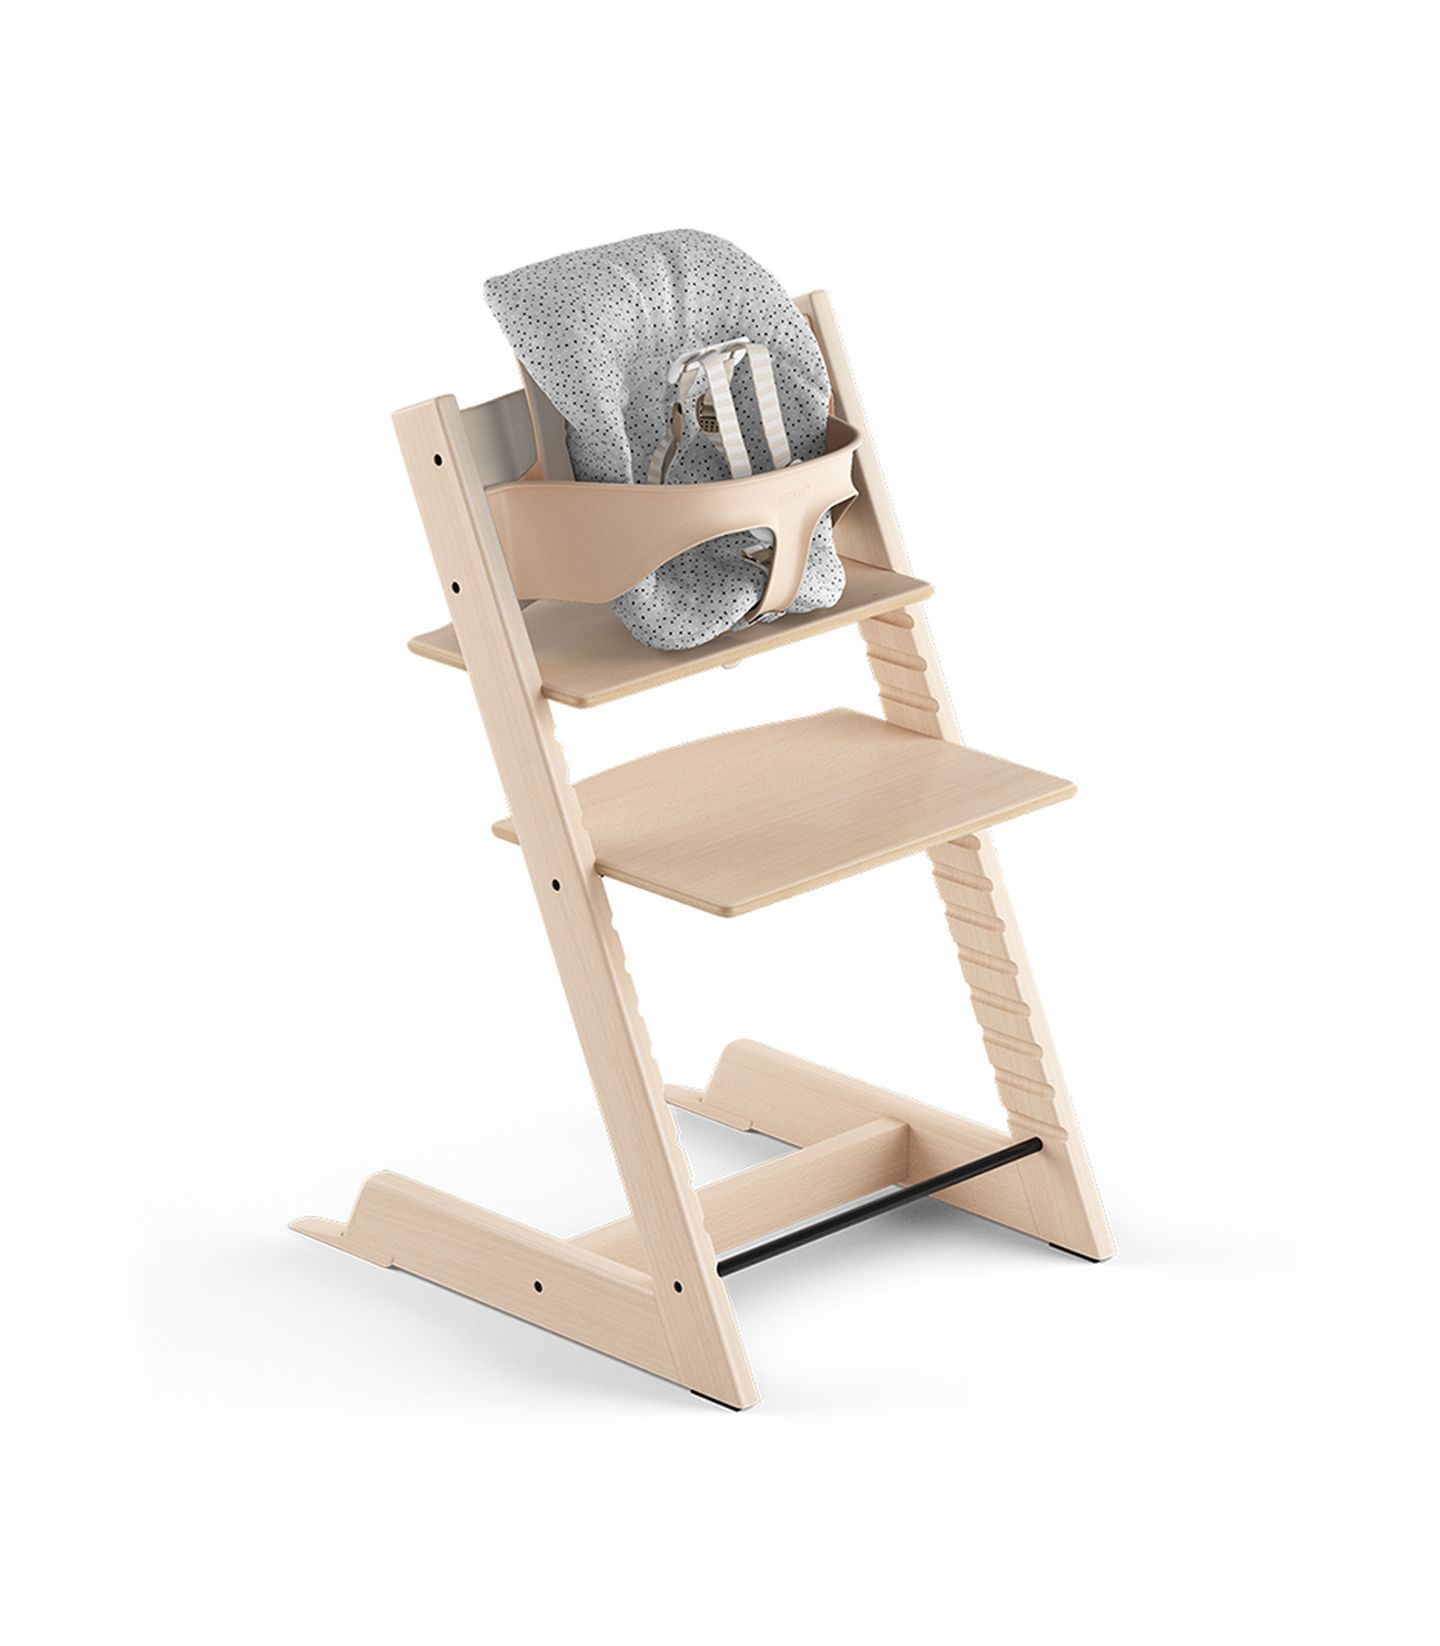 Tripp Trapp Natural Beech With Tripp Trapp Baby Set And Baby Cushion Cloud Sprinkle Us Version With Harness Best High Chairs Tripp Trapp Chair Chair